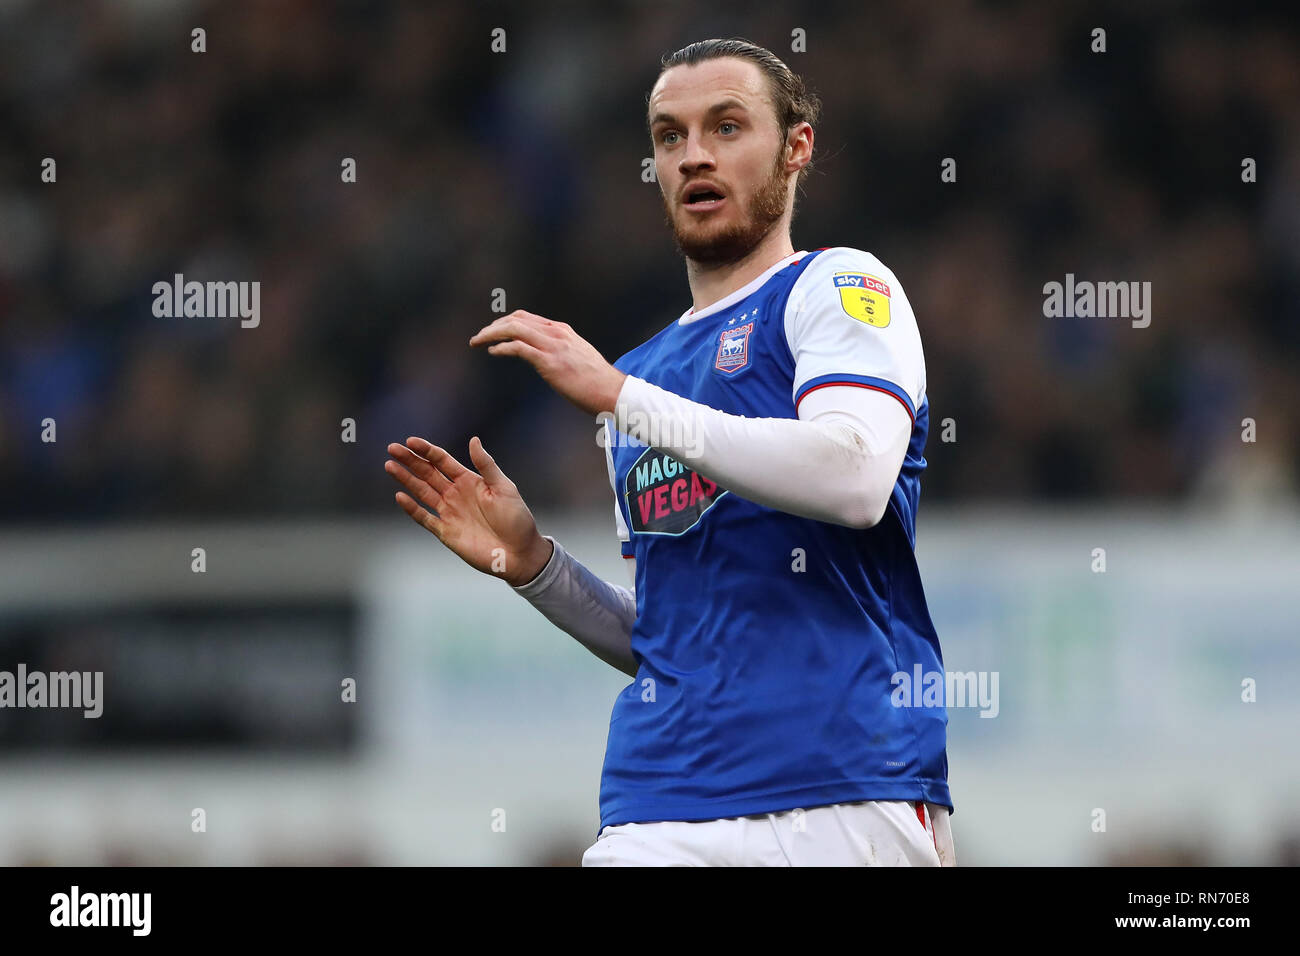 Will Keane of Ipswich Town - Ipswich Town v Stoke City, Sky Bet Championship, Portman Road, Ipswich - 16th February 2019  Editorial Use Only - DataCo  - Stock Image